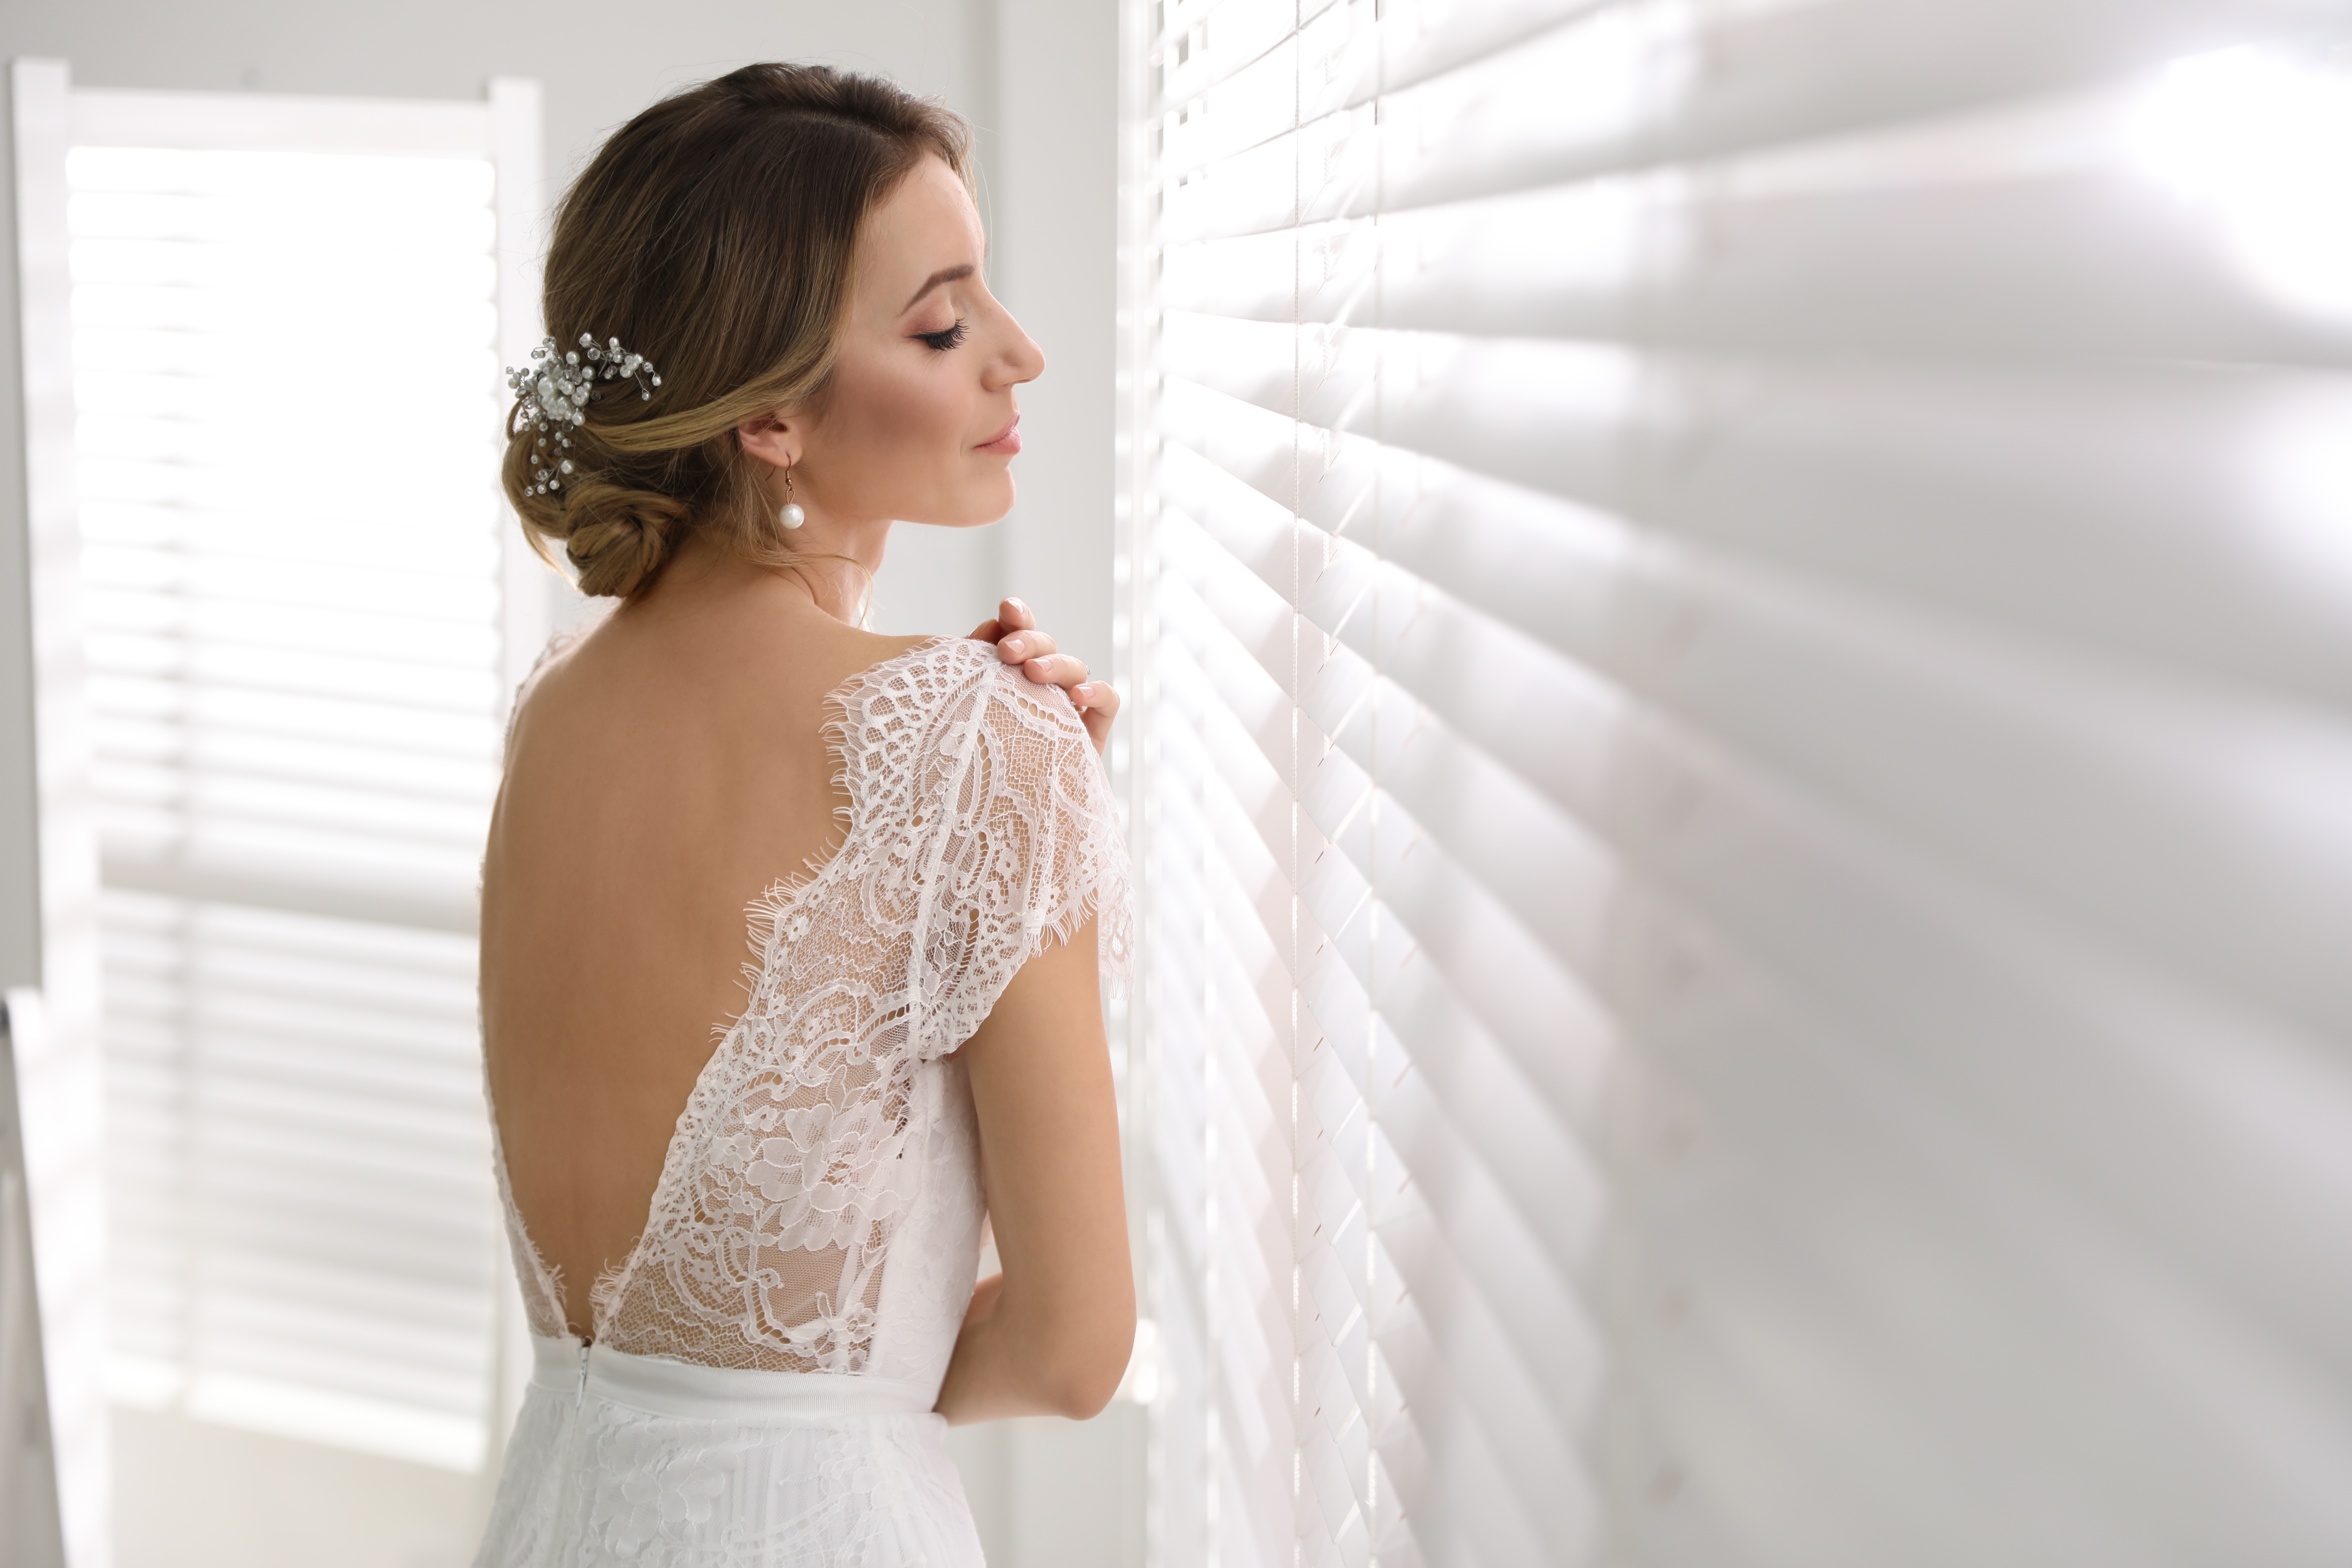 How to Try on Wedding Dresses at Home